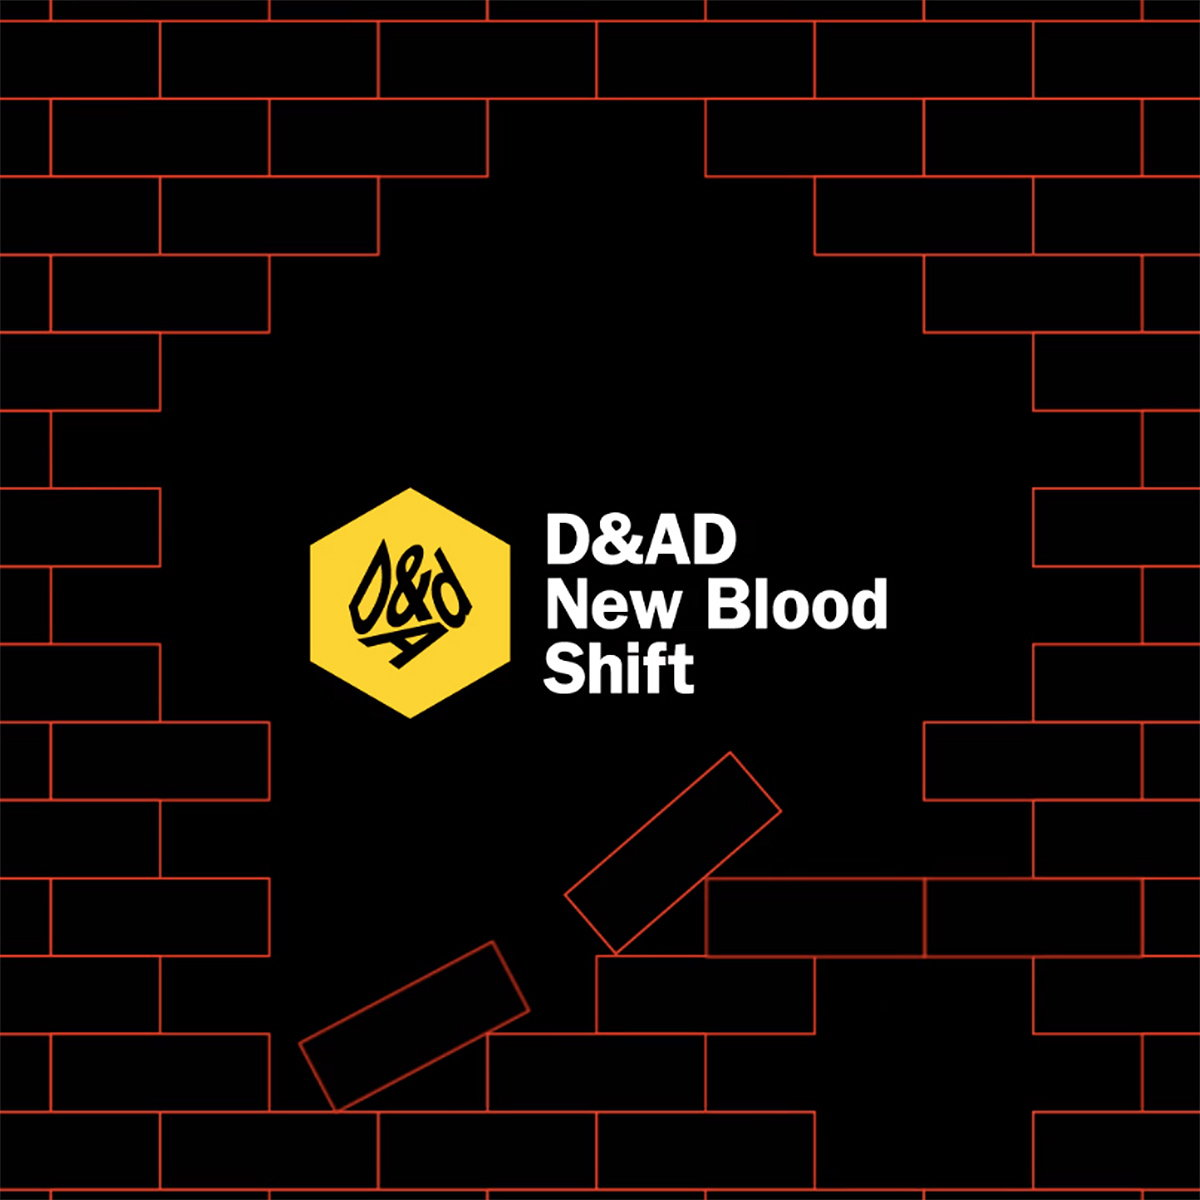 D&AD New Blood Shift London 2019 Open for Applications